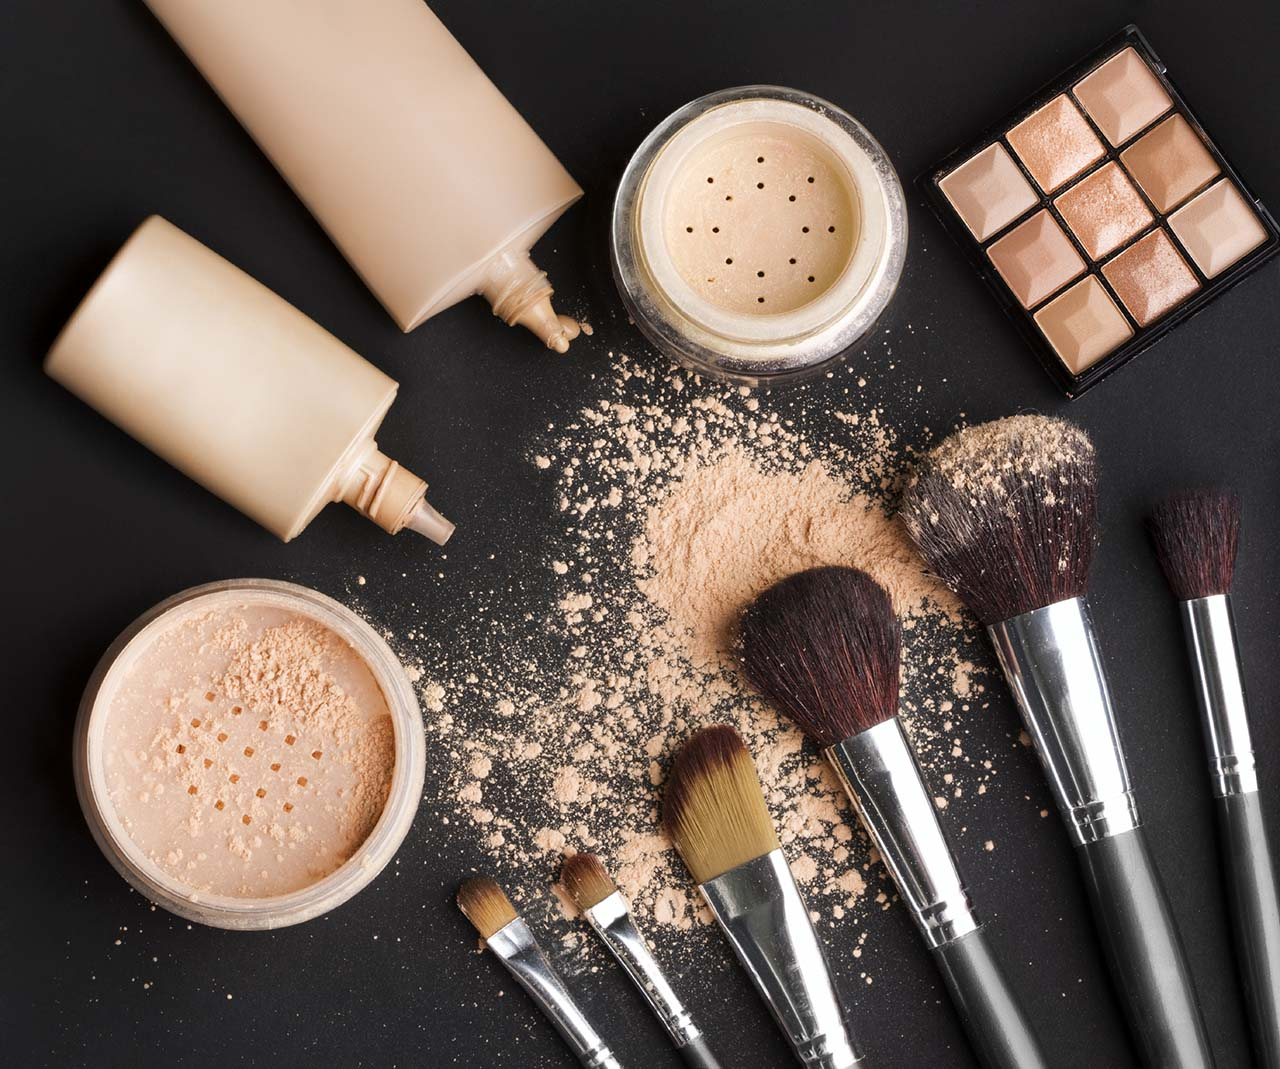 11 Unwritten Rules Of Having A Flawless Skin #9: Clean Your Makeup Brushes